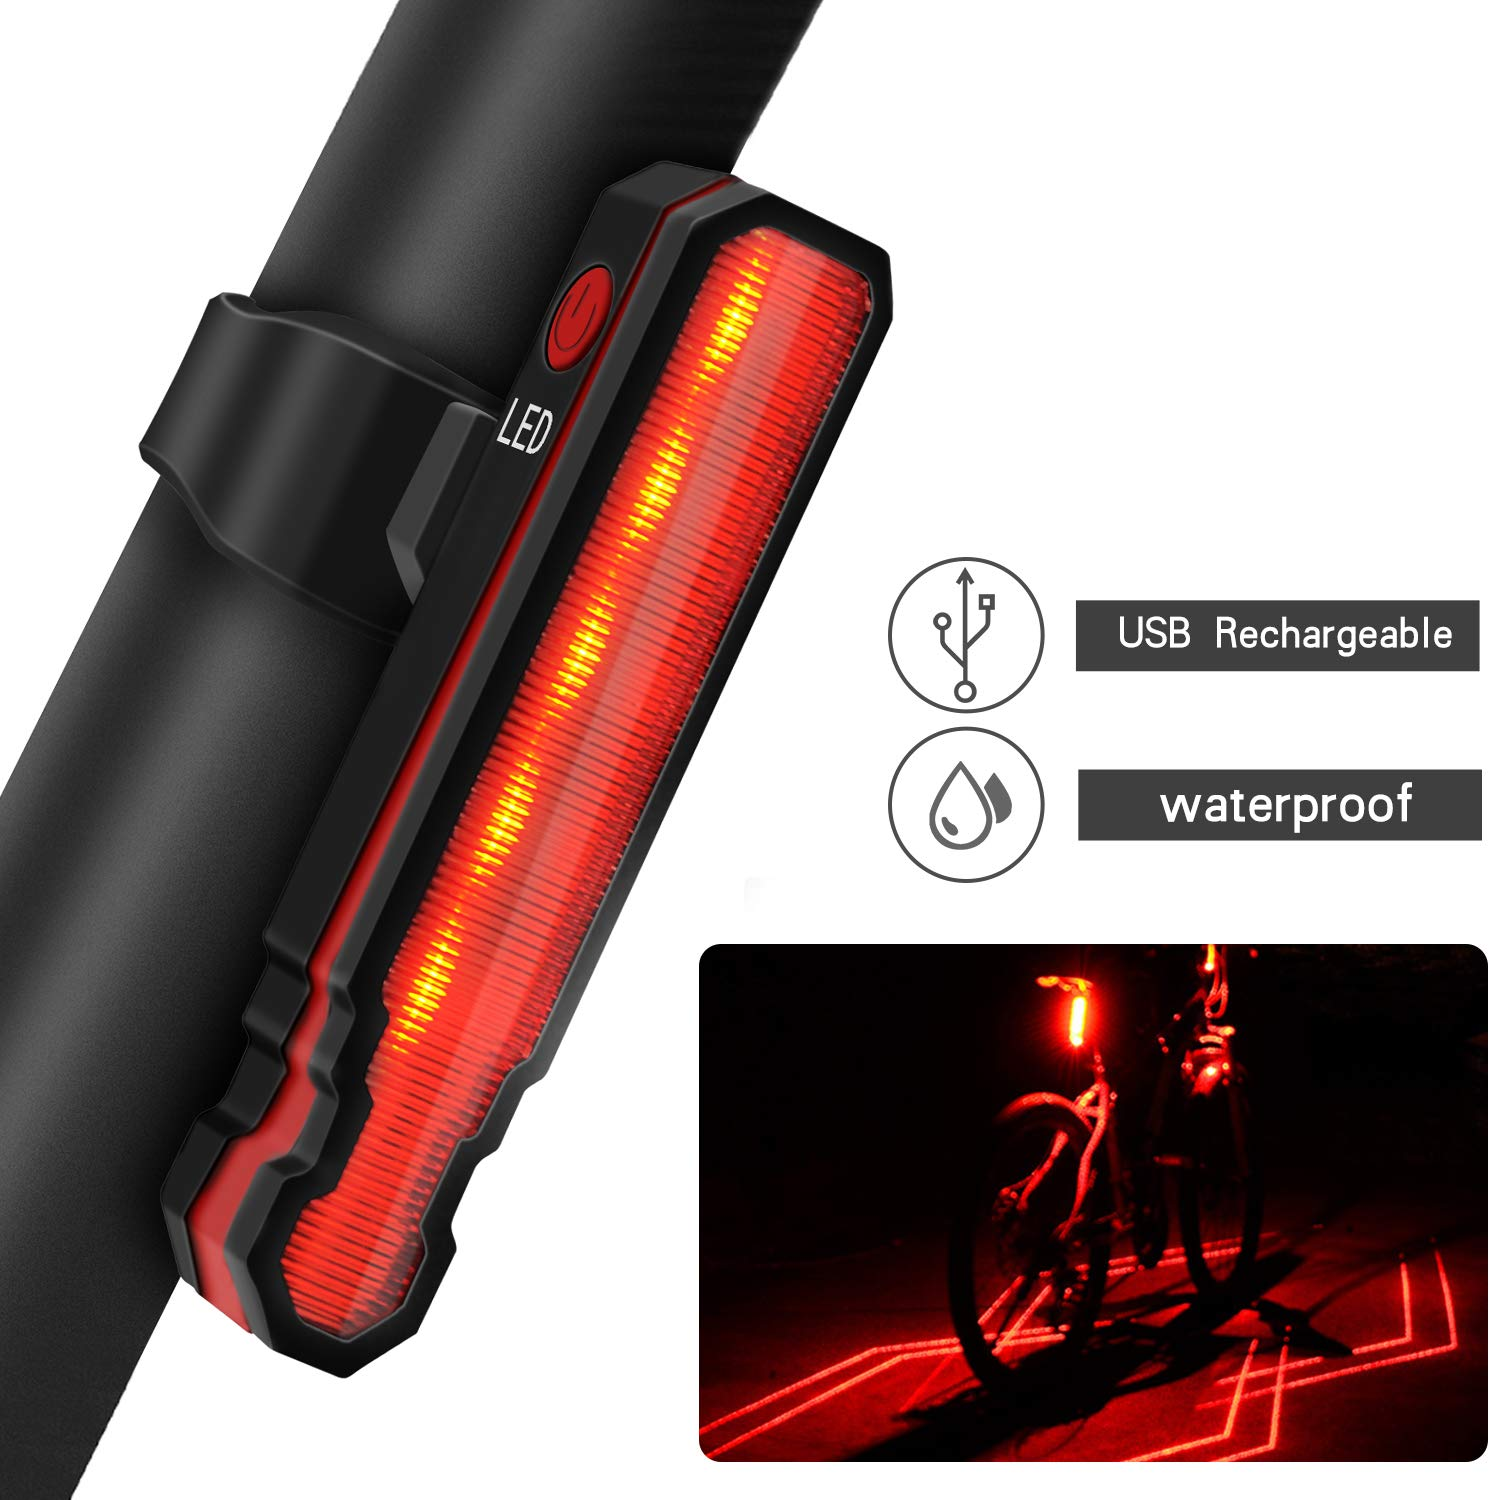 9e53616e3d6309 Amazon.com : Passionfun Bike Tail Light Rechargeable Bicycle Rear Light,  Red Bright High Intensity LED Bike Accessories for Cycling Safety  Flashlight ...